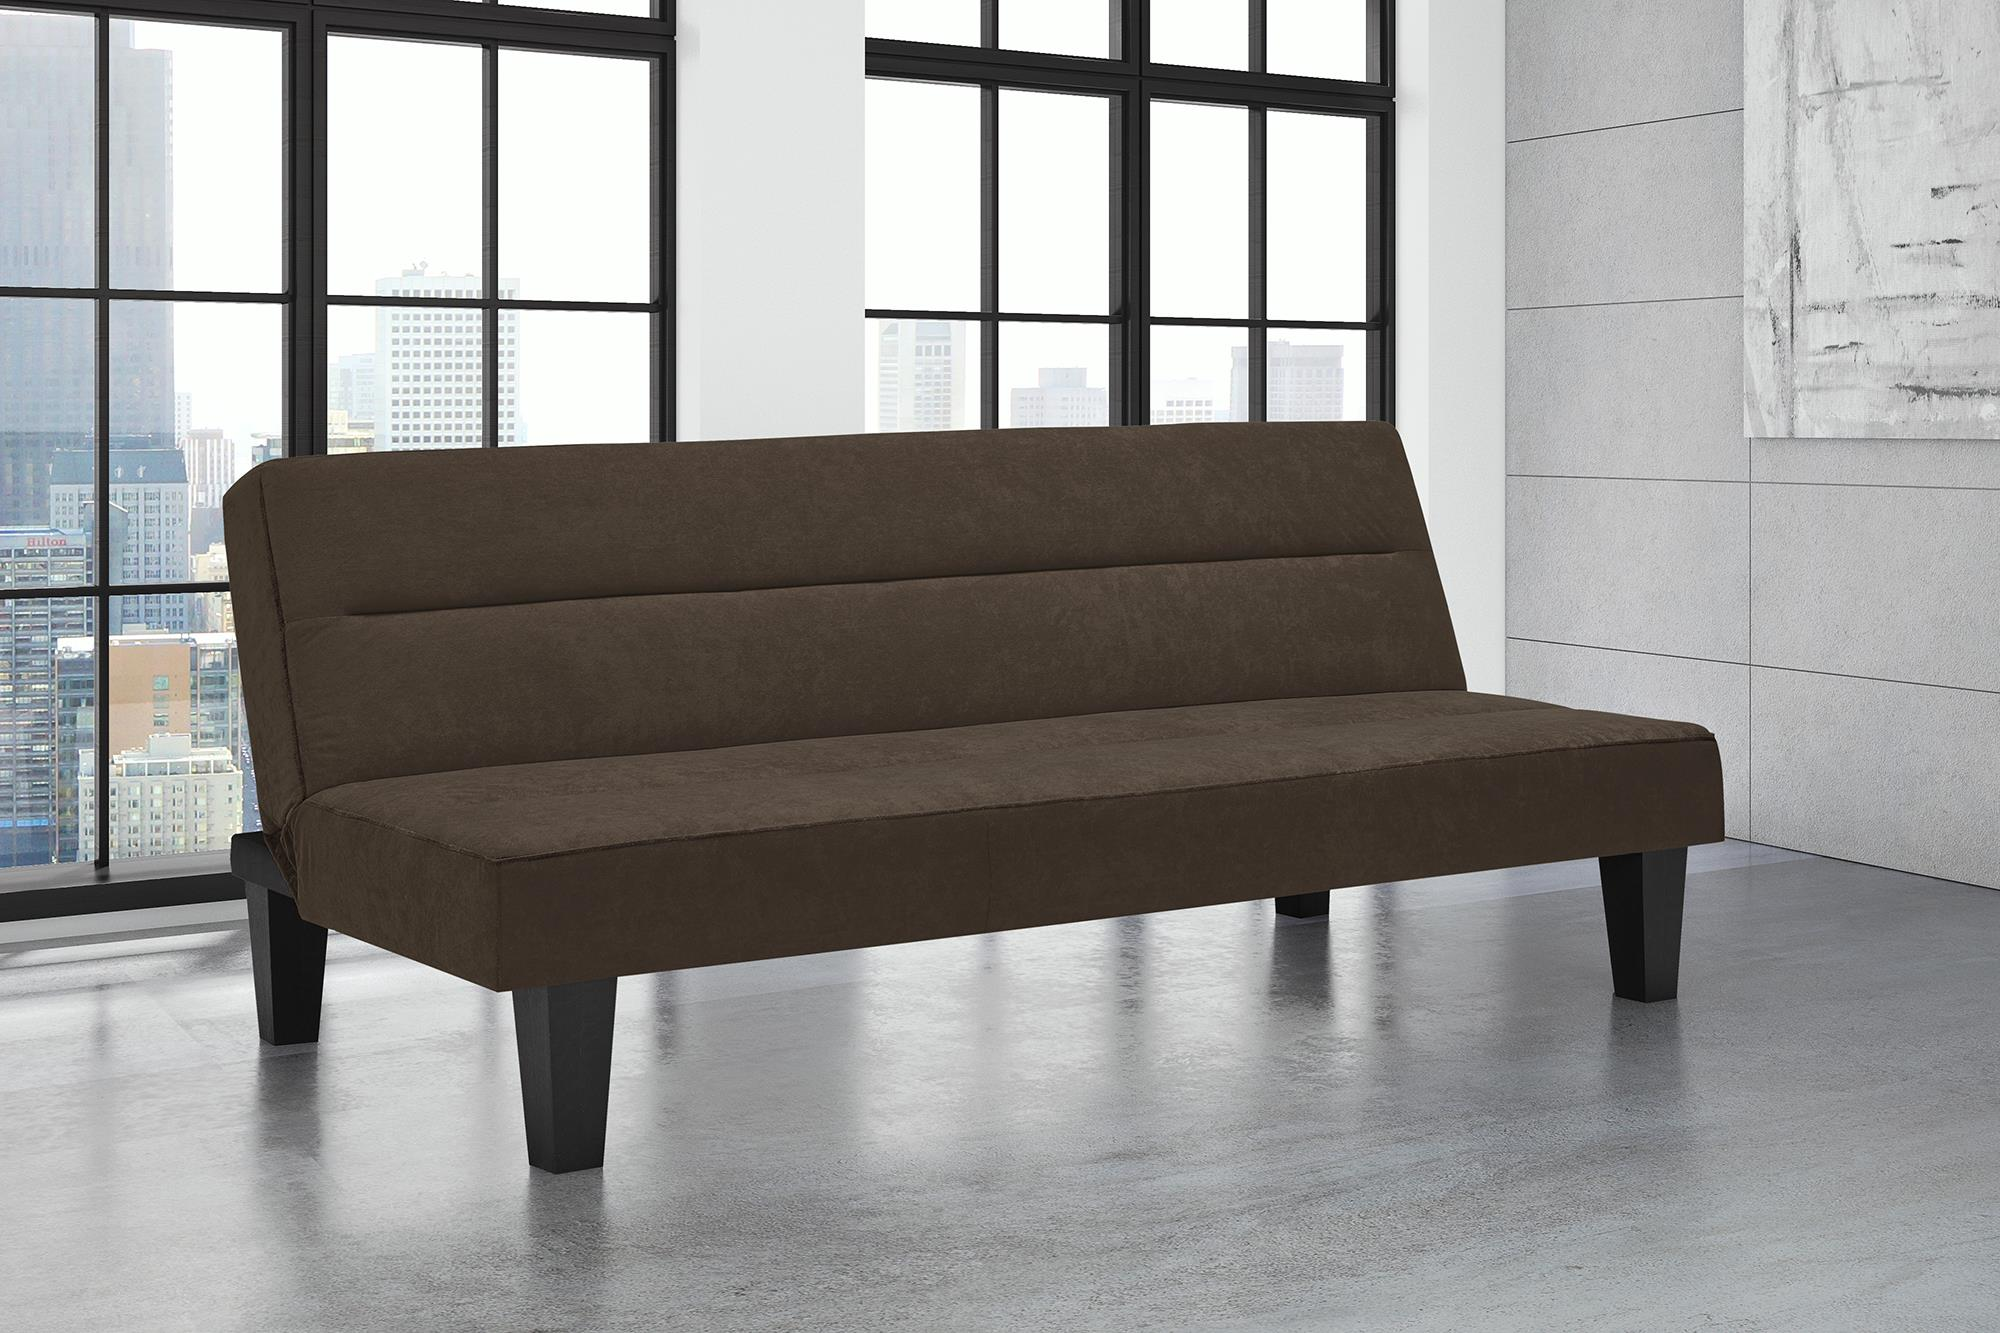 Superior DHP Kebo Futon Couch With Microfiber Cover, Multiple Colors   Walmart.com